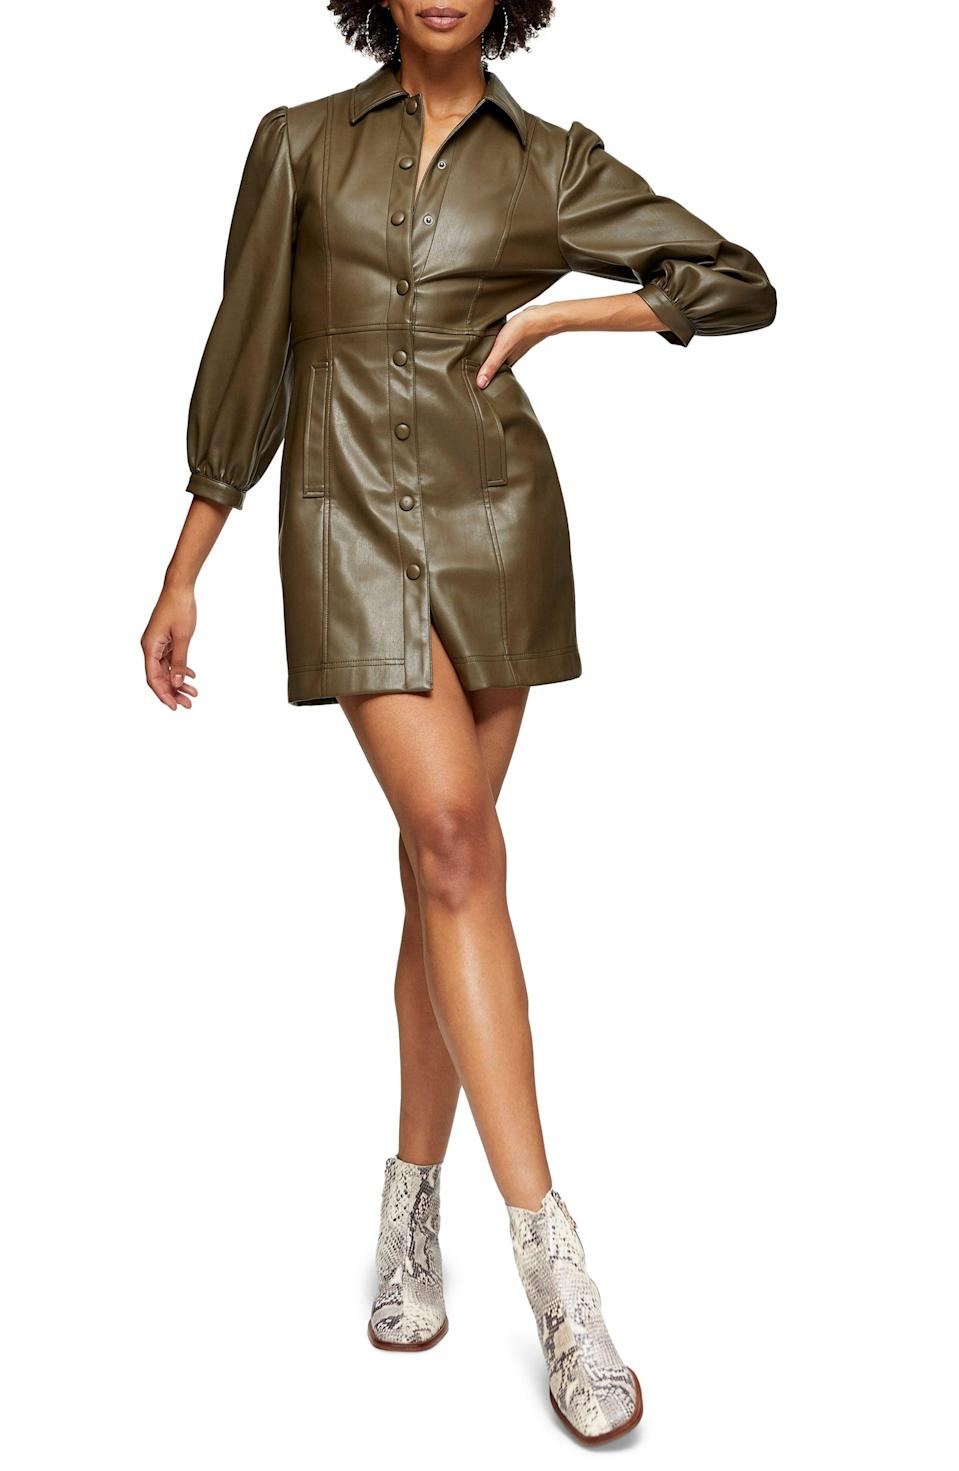 <p>Tap into the colored-leather trend with this <span>Topshop Long Sleeve Faux Leather Shirtdress</span> ($33, originally $78).</p>